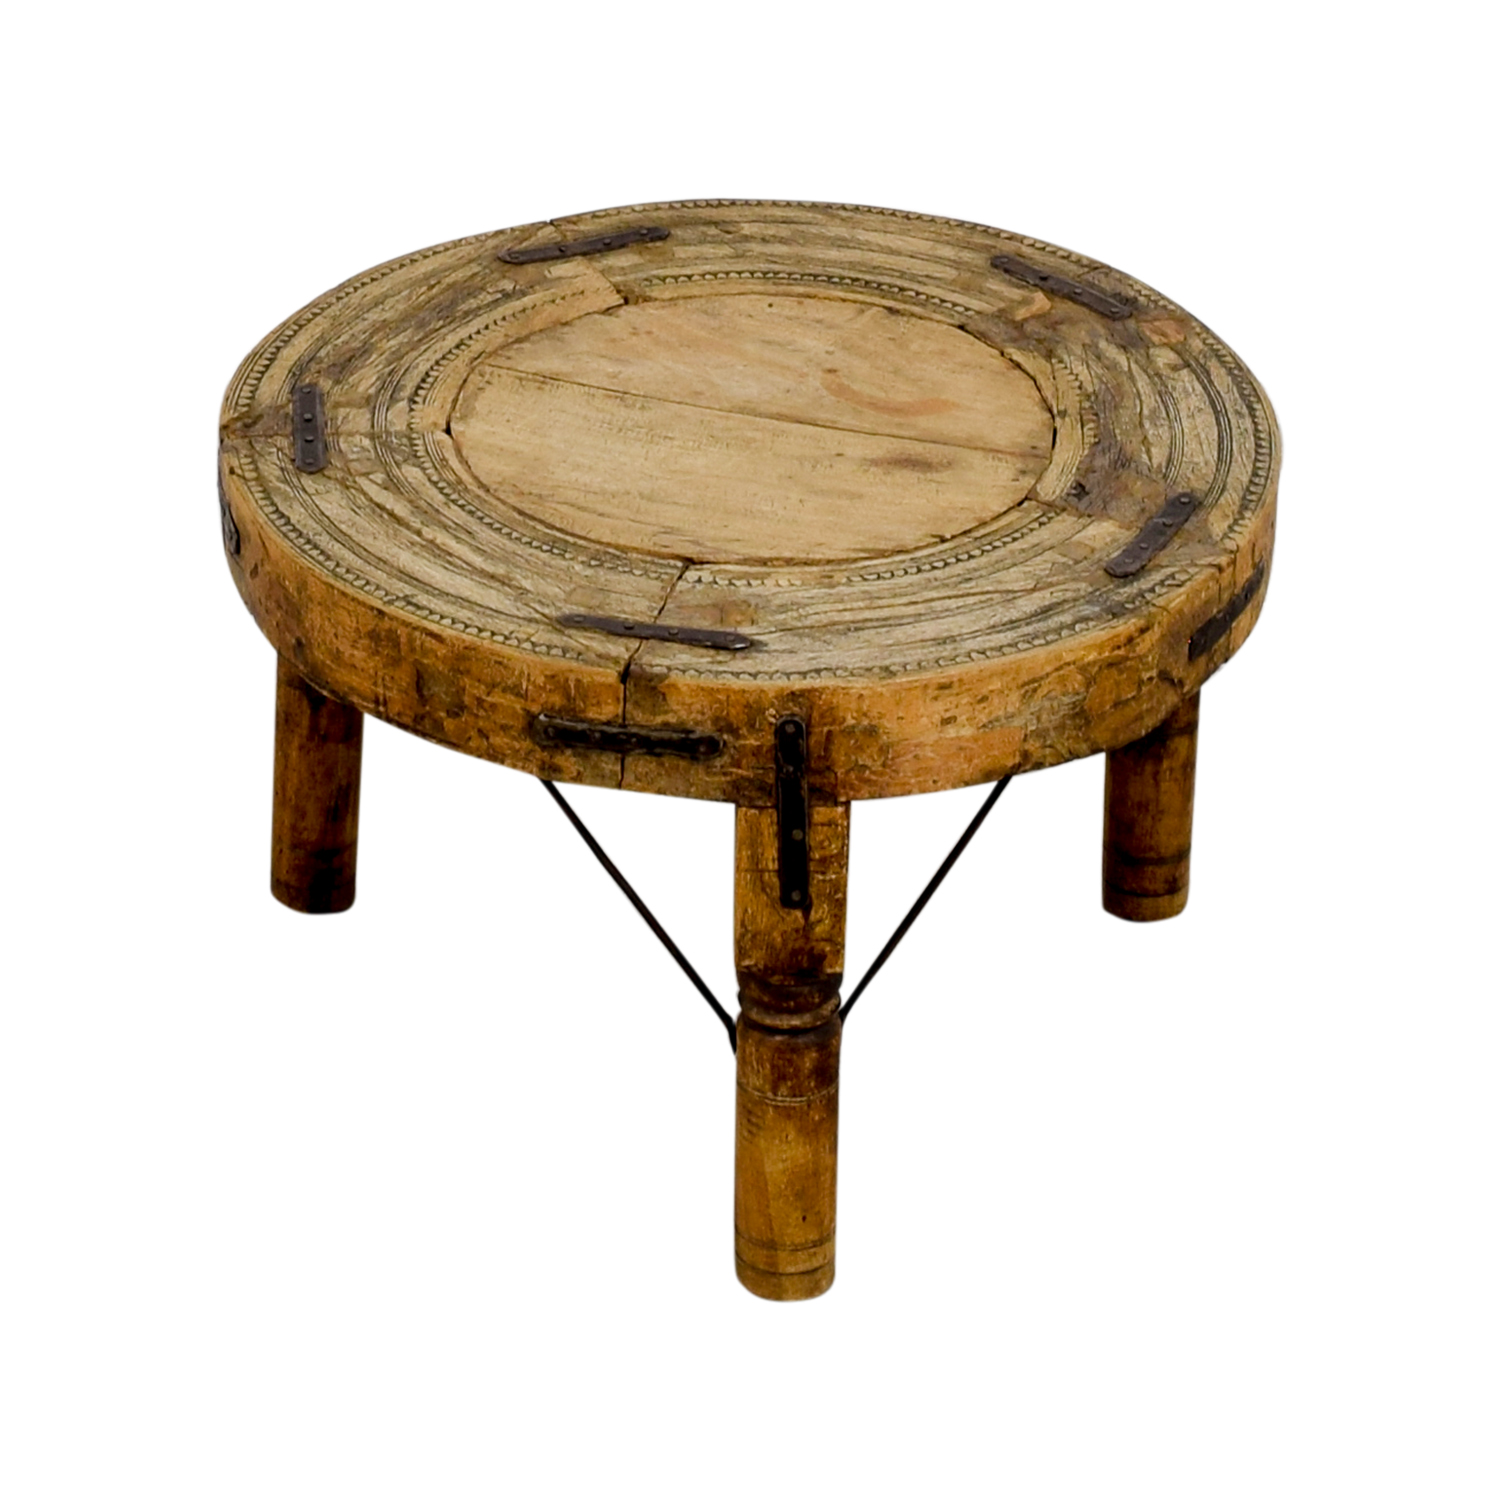 Distressed Three-Legged Side Table